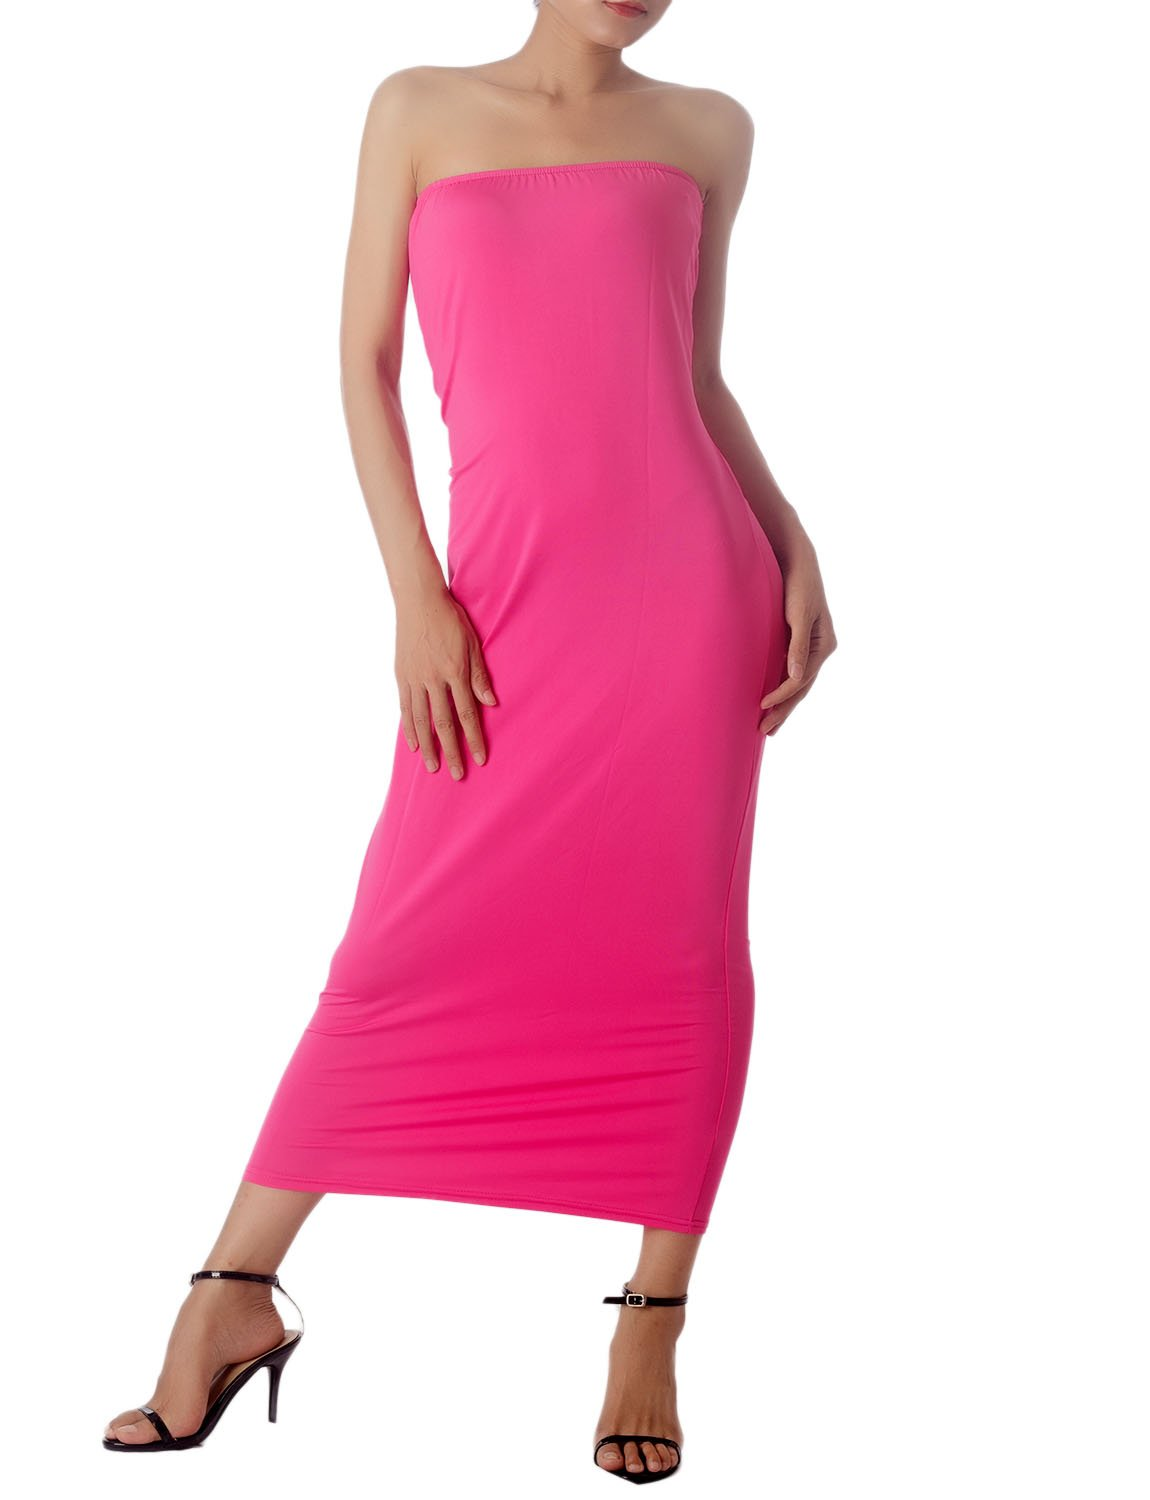 Women's Casual Sleeveless Stretch Tube Pencil Bodycon Long Strapless Dress, Size: XL, Hot Pink